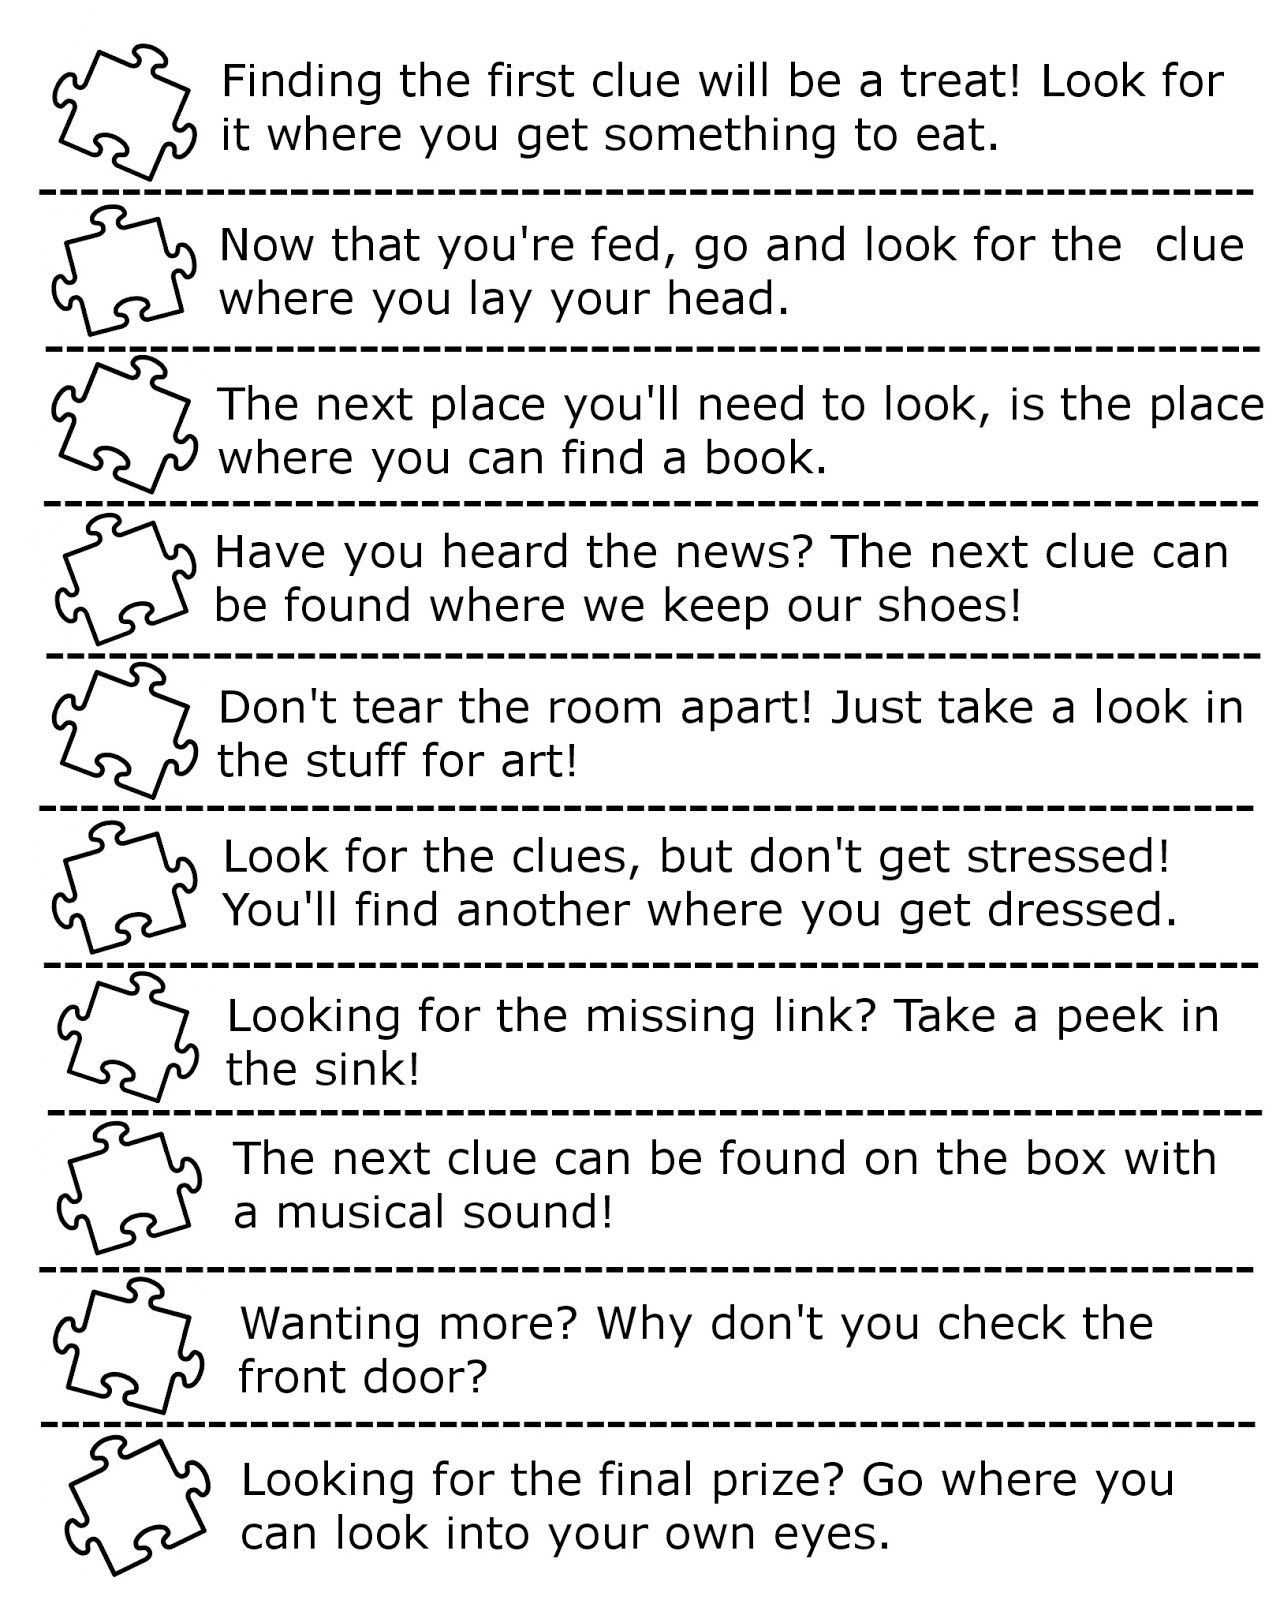 Clues for creating a puzzle hunt Activities for Kids